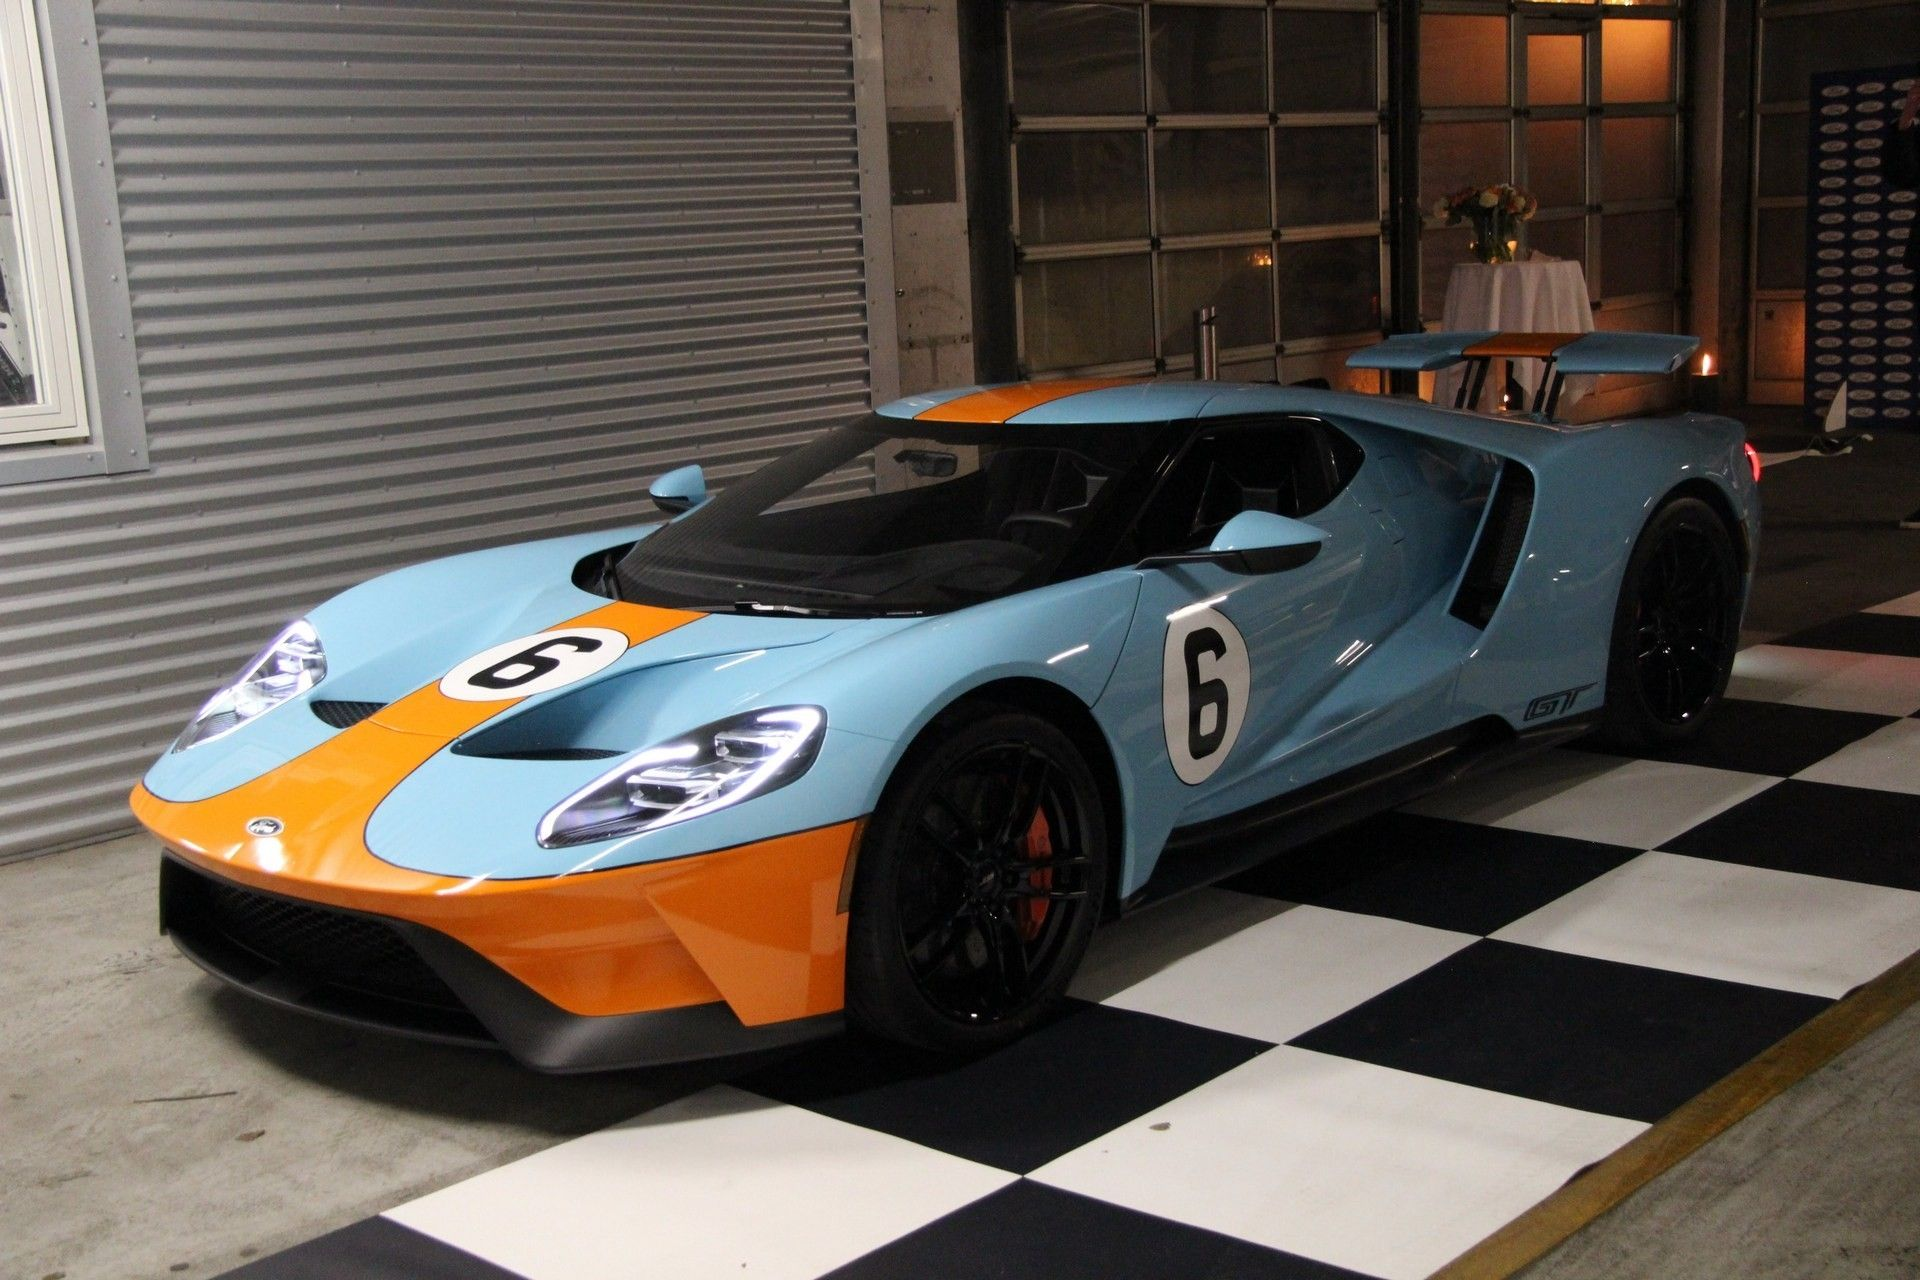 2019 Ford Gt Supercar Price Car Gallery Ford Gt Super Cars Ford Gt For Sale